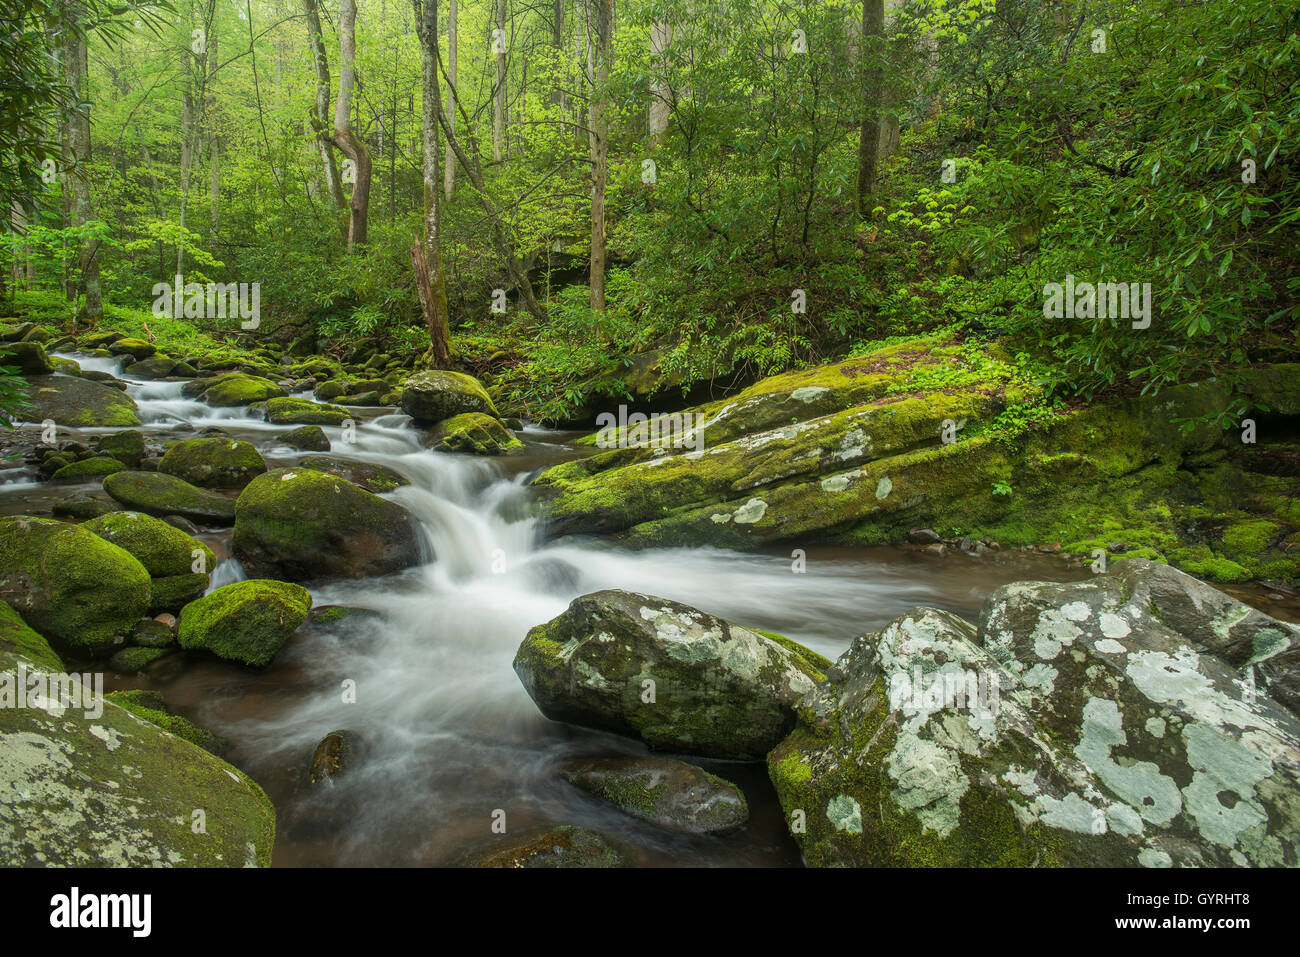 Moss-coperta di rocce e massi lungo Roaring Fork River, estate, Great Smoky Mountain National Park, Tennessee, Stati Immagini Stock